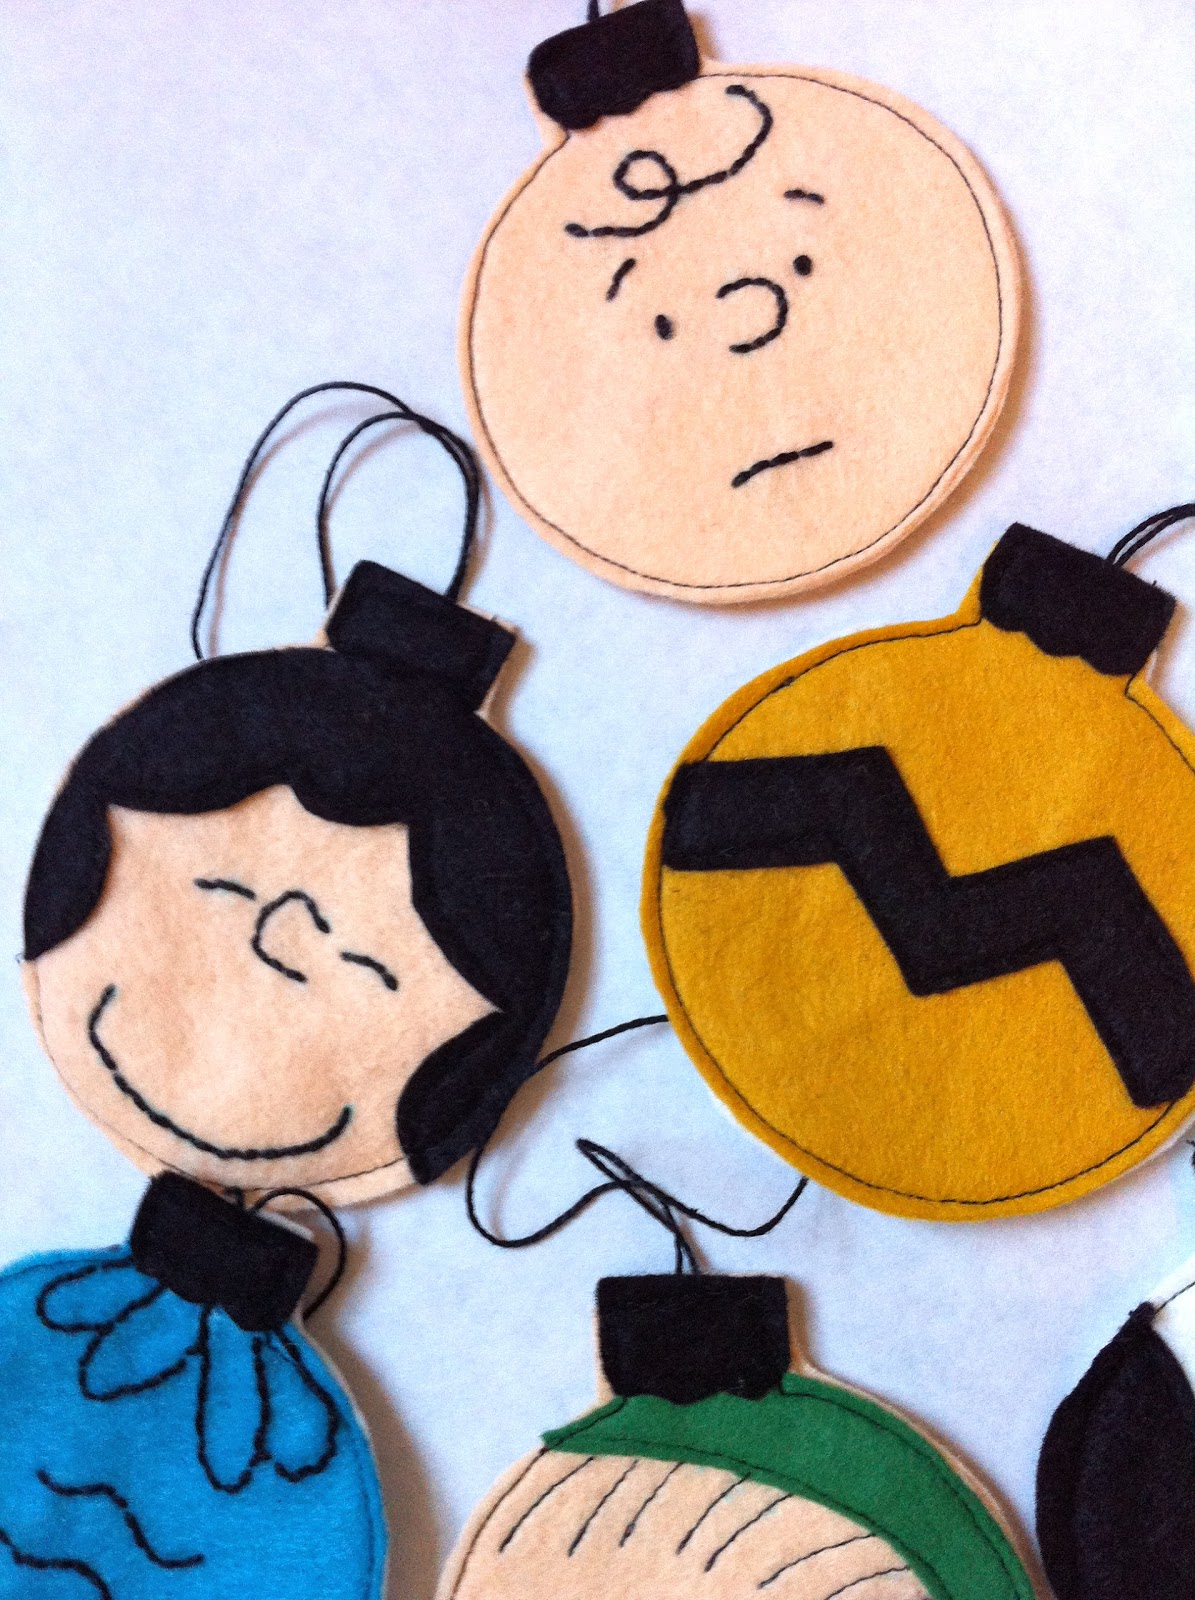 charlie brown christmas ornaments tutorial - Charlie Brown Christmas Decorations